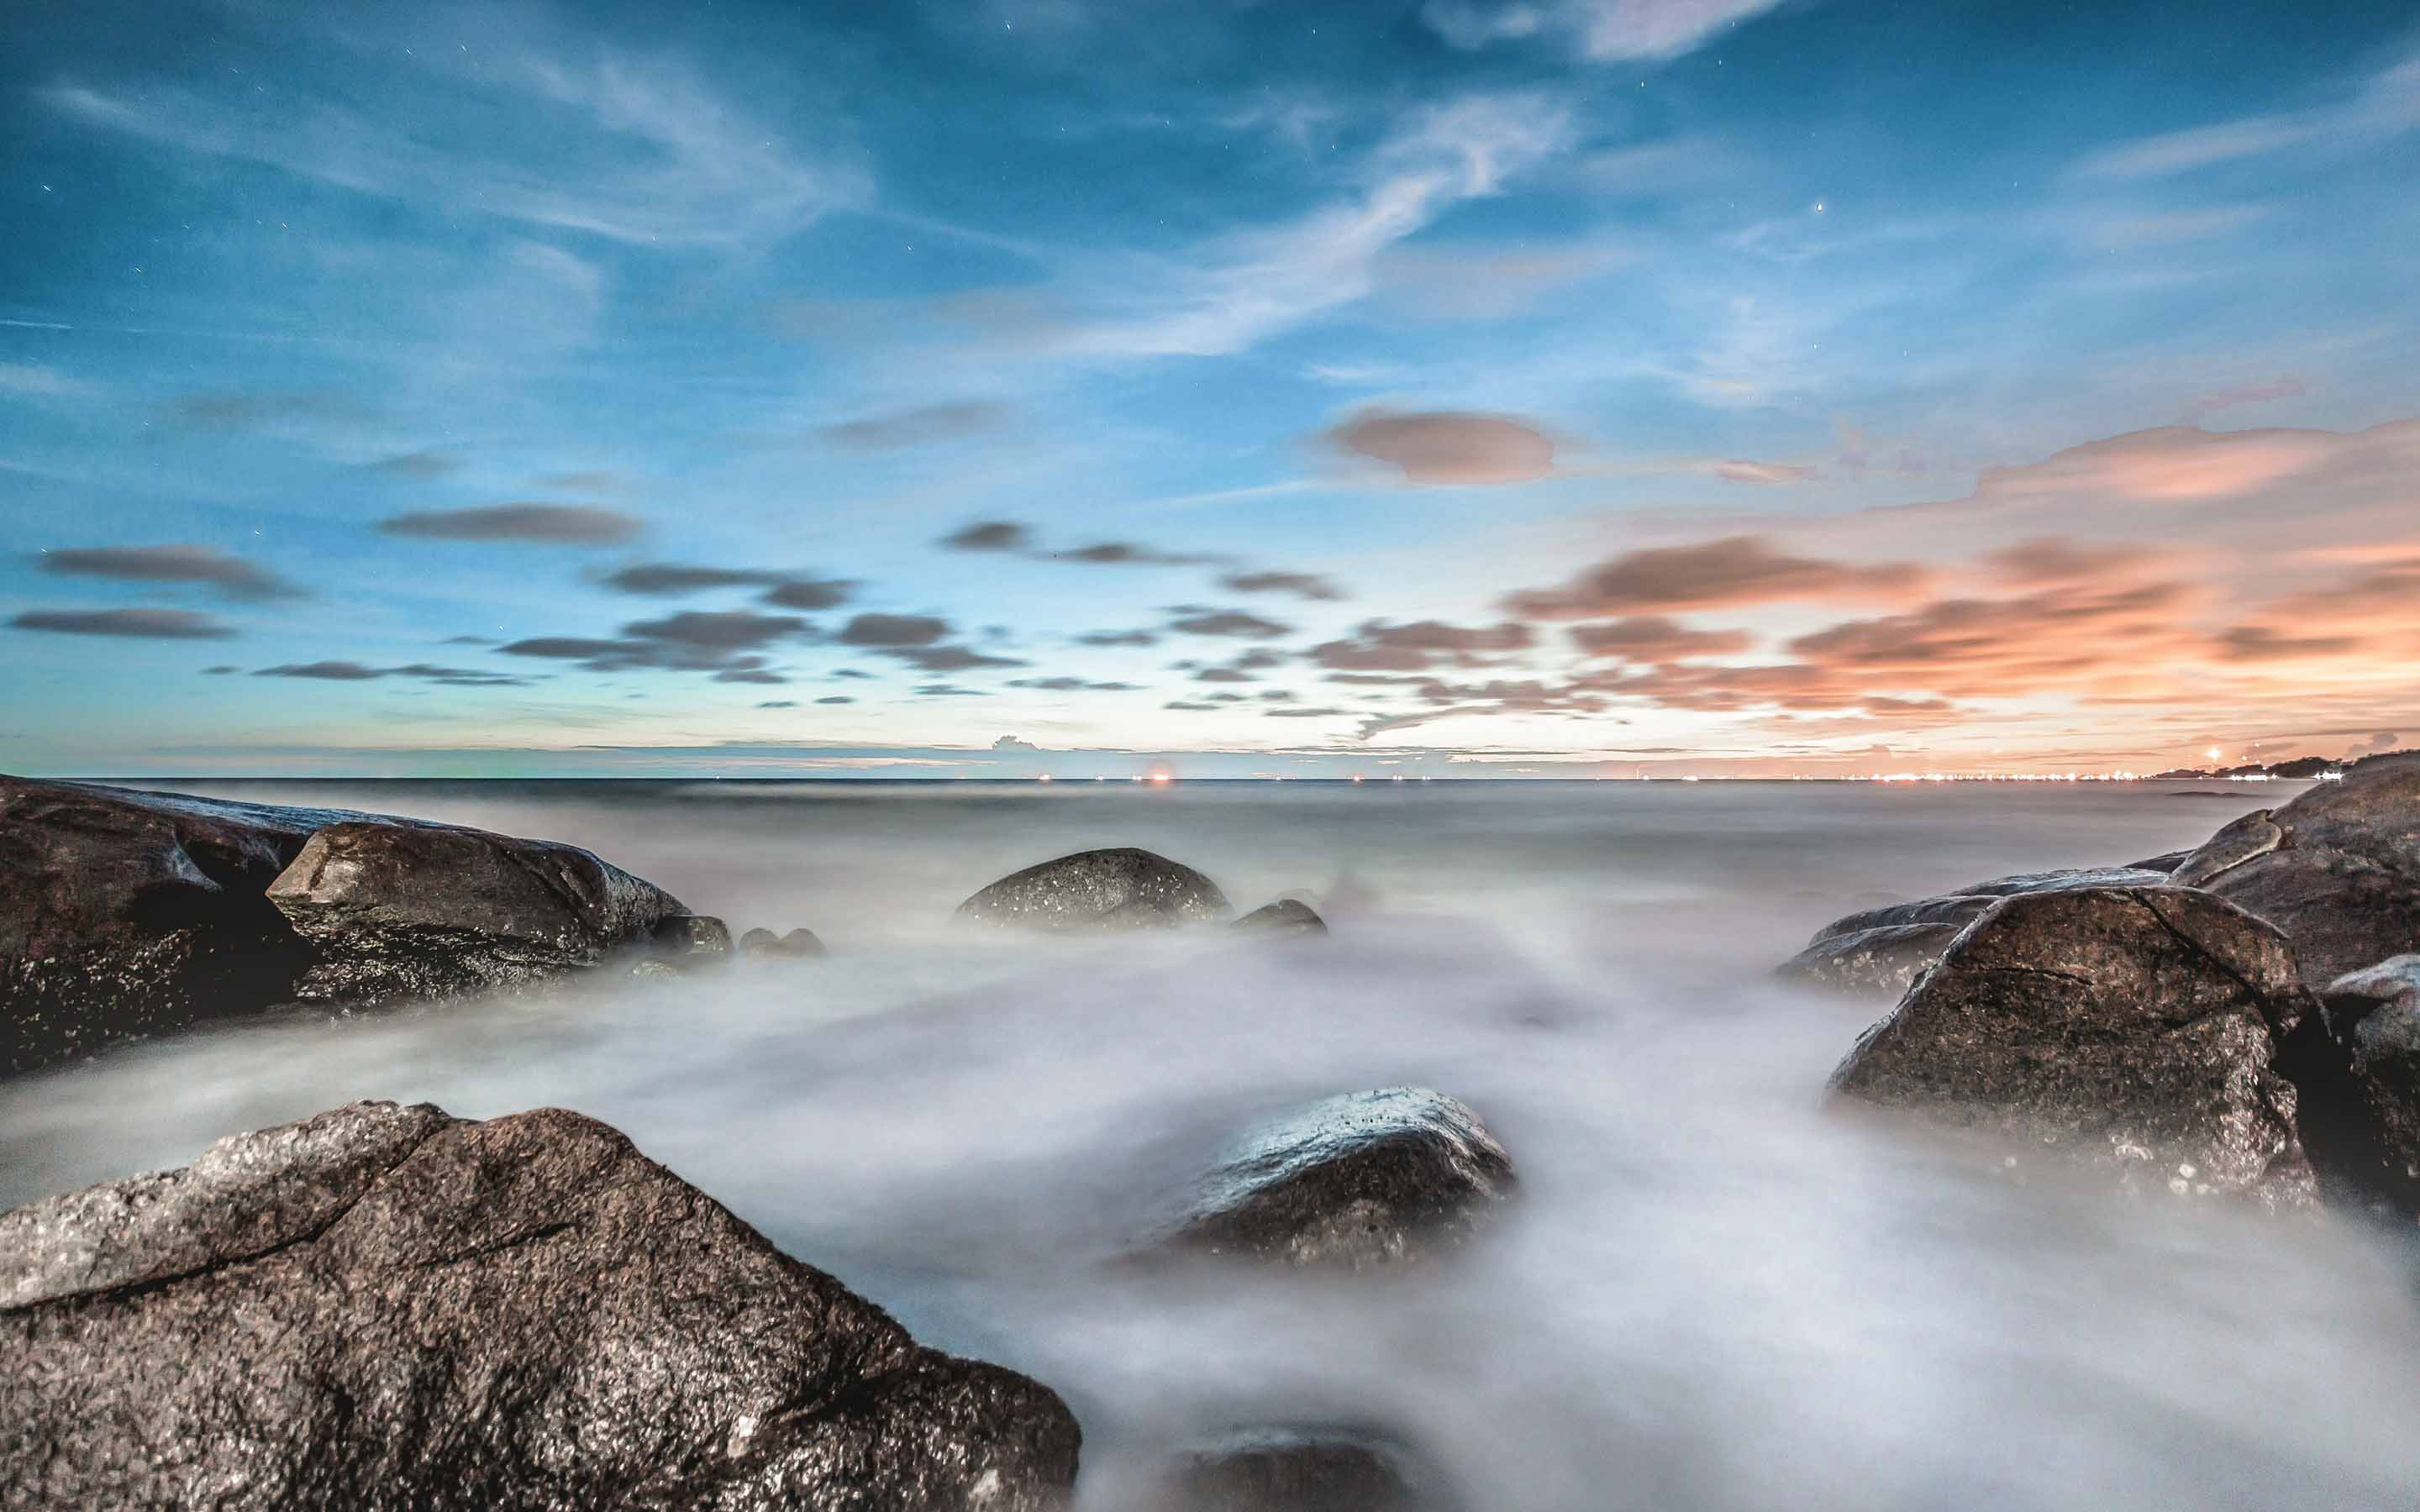 Sea-sky-ocean-rocks-fog-nature-landscape-2880x1800